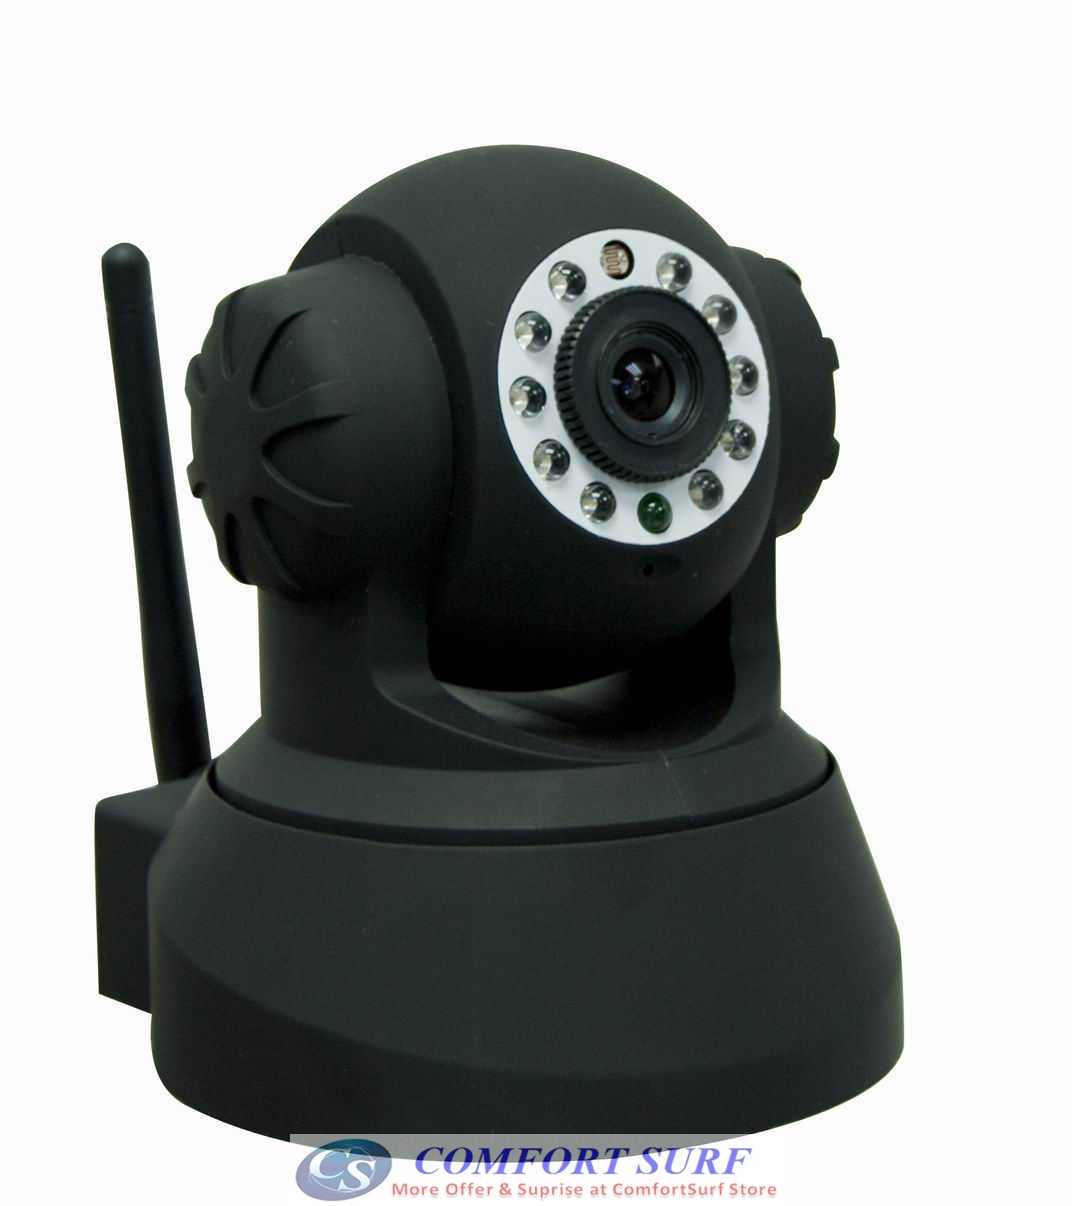 Bossan Wireless / Wired CCTV IP Camera, Pan tilt 335 IR Night Vision - Remote Monitoring Via smartphone